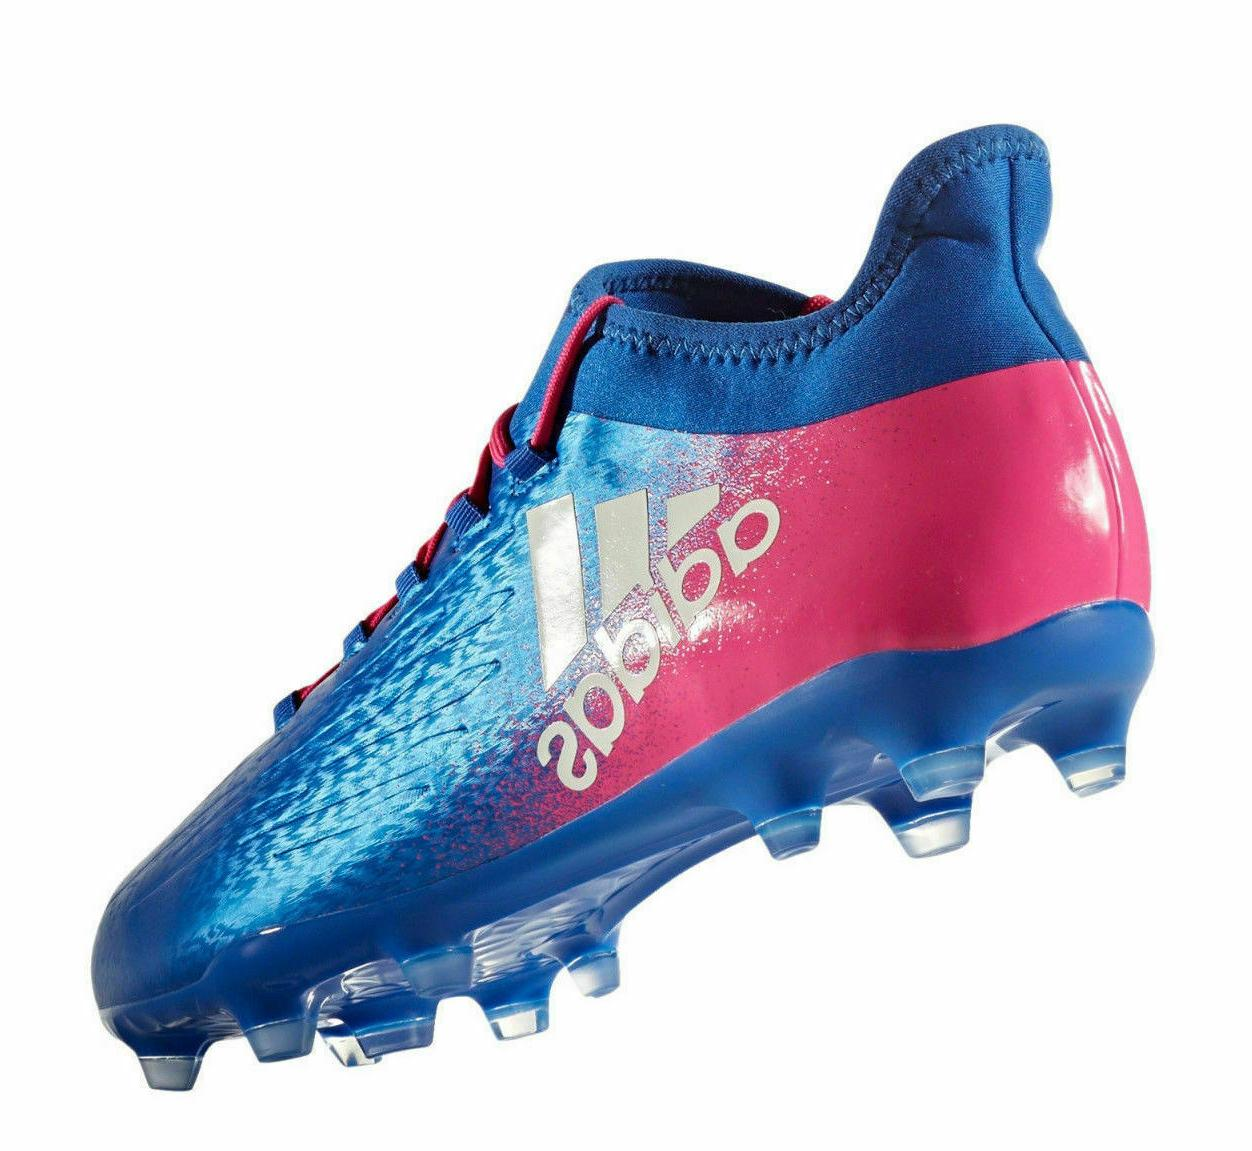 adidas Soccer Cleats Suarez - Blue/White/Pink - - Size: